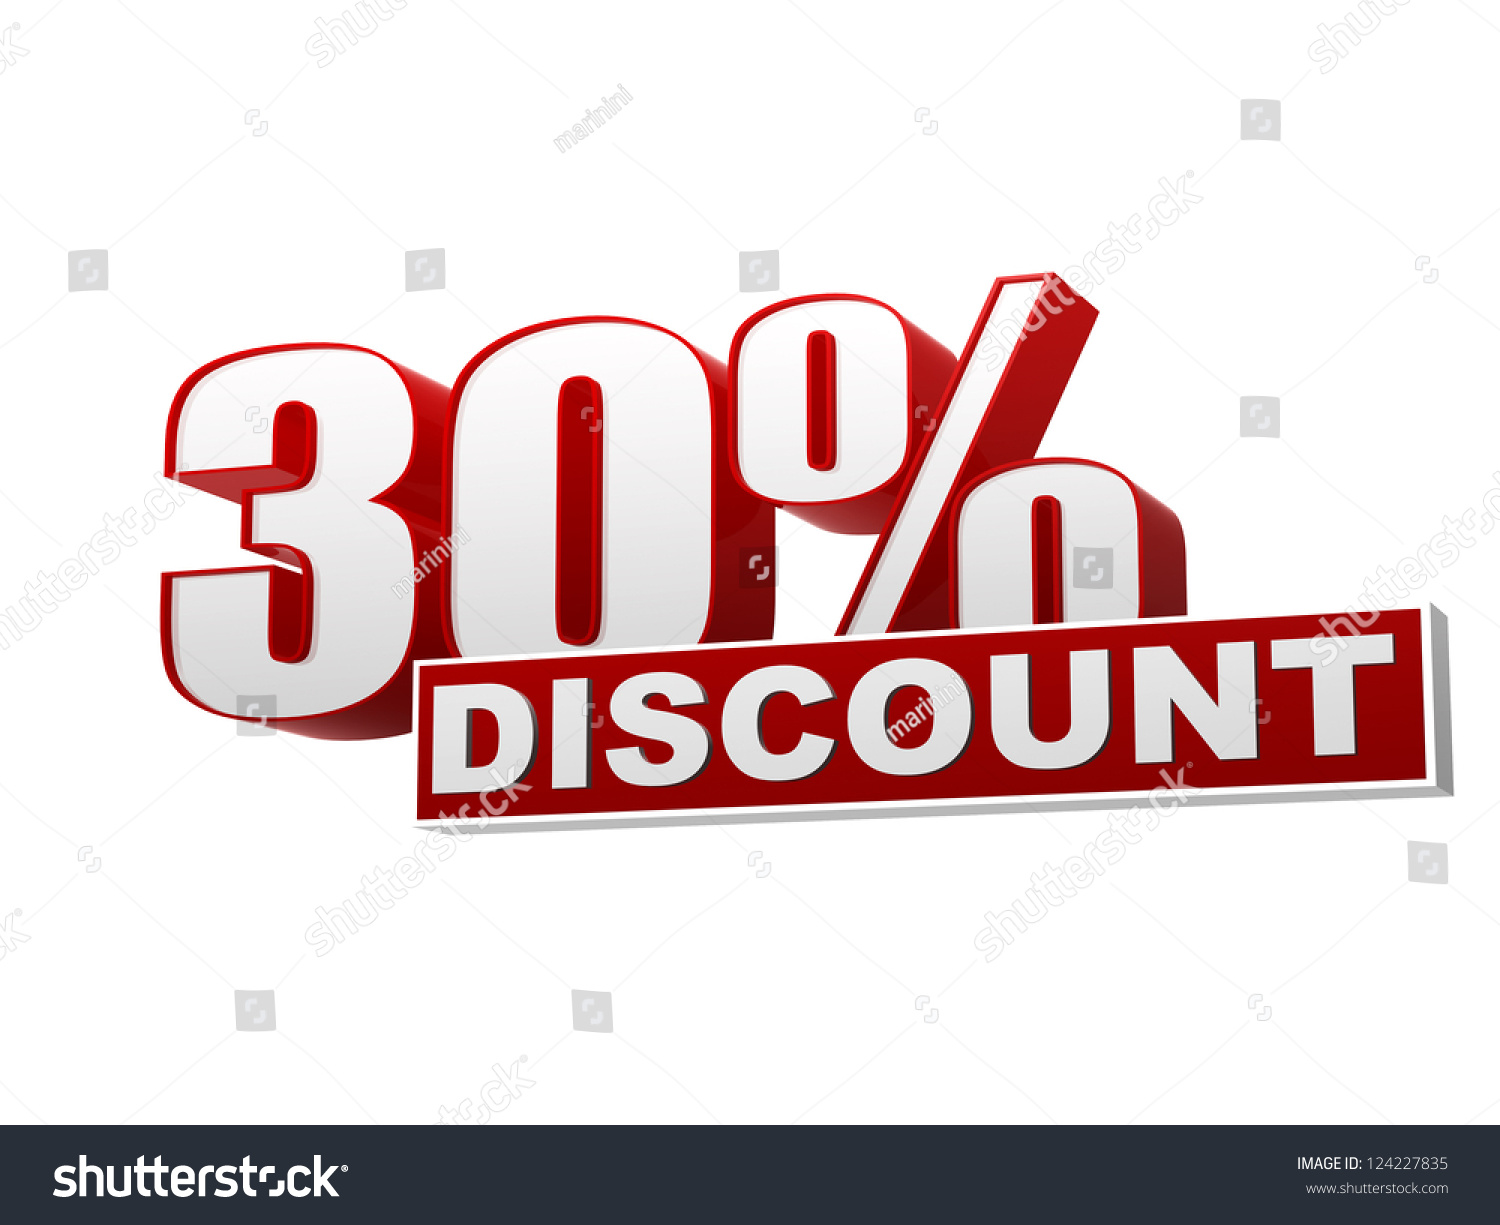 Save up to 25% with these current Shutterstock coupons for December The latest maump3.ml coupon codes at CouponFollow.